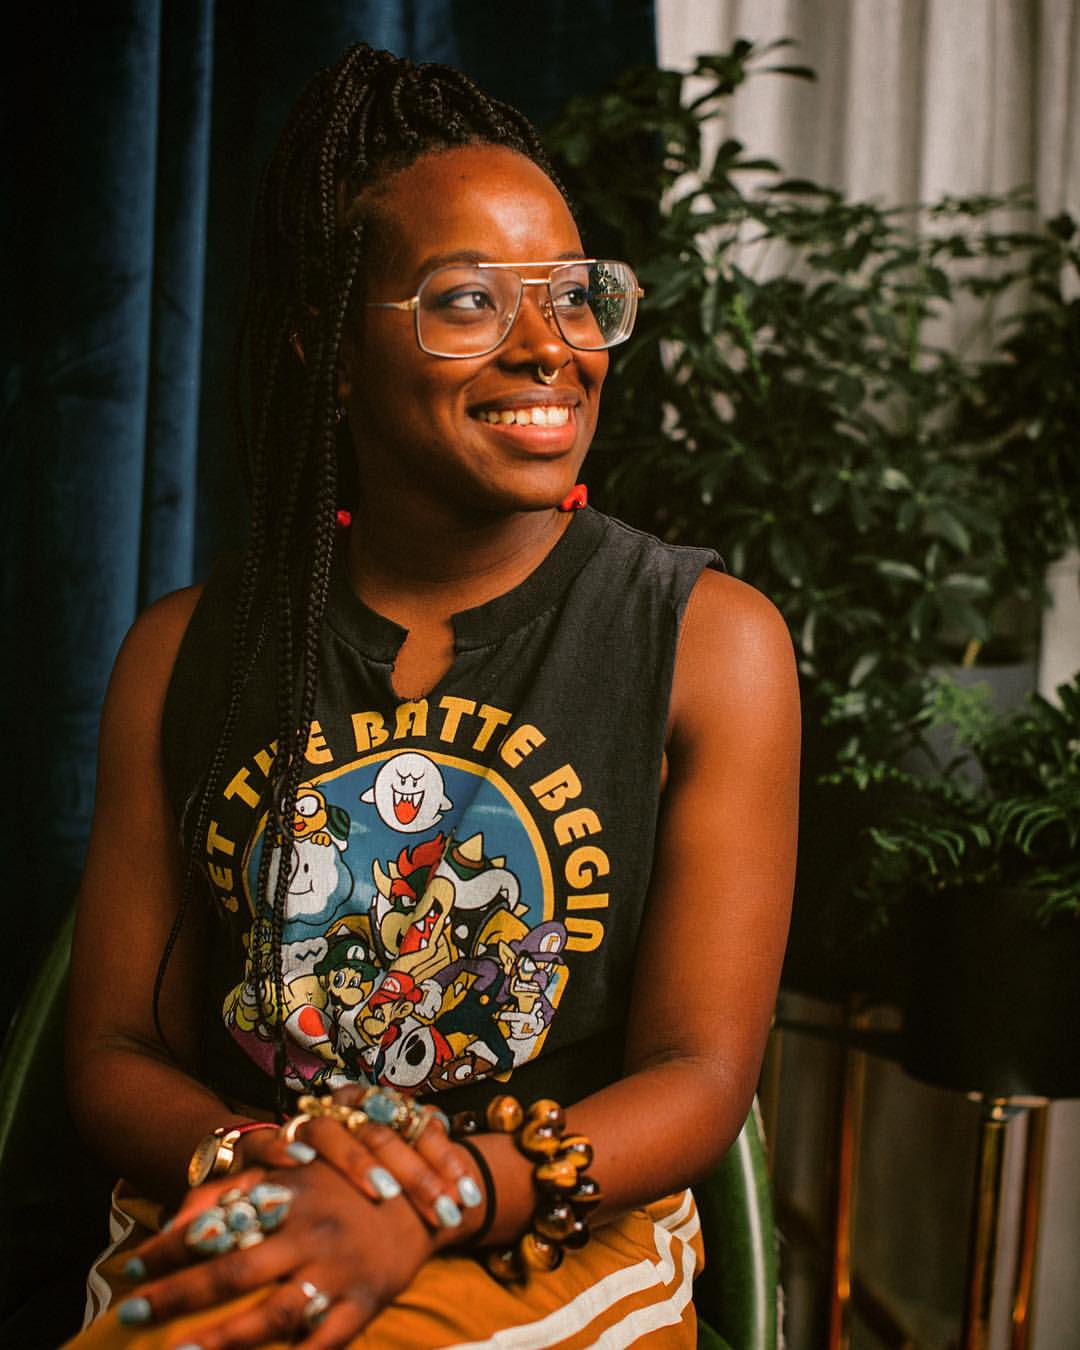 Ashtin Berry - Ashtin discusses making the hospitality industry a more equitable space through education and activism, her self-care routine, radical transparency, and more.